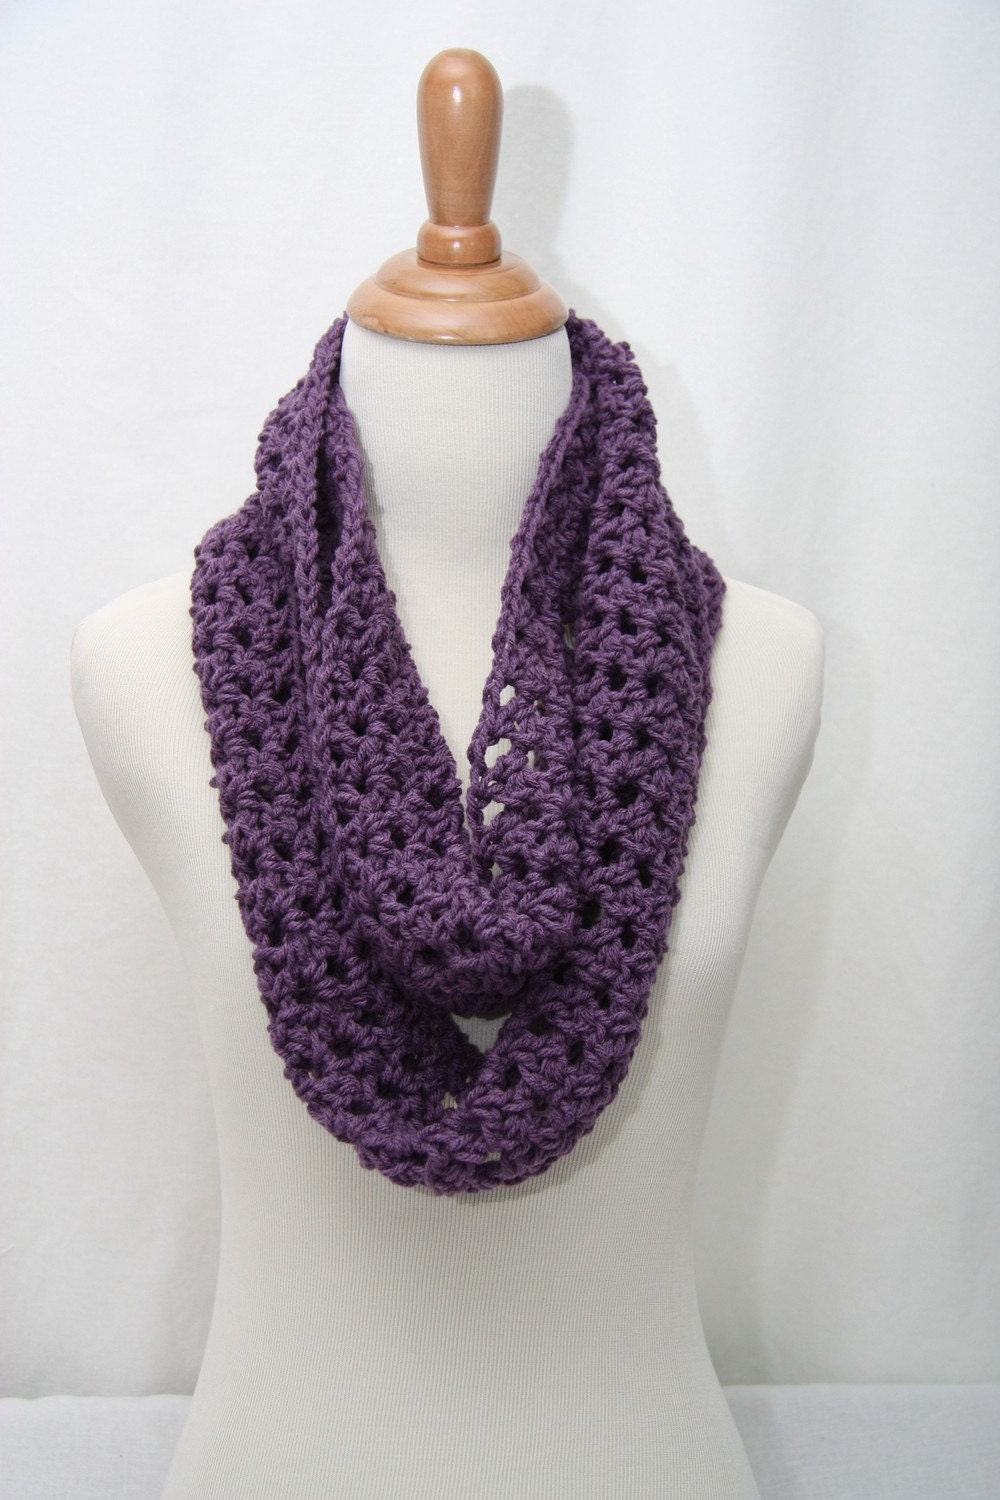 Infinity Cowl Neck Scarf by HandmadeByLarrie Cowl Neck Scarves Crochet Easy Neck Scarves Crochet